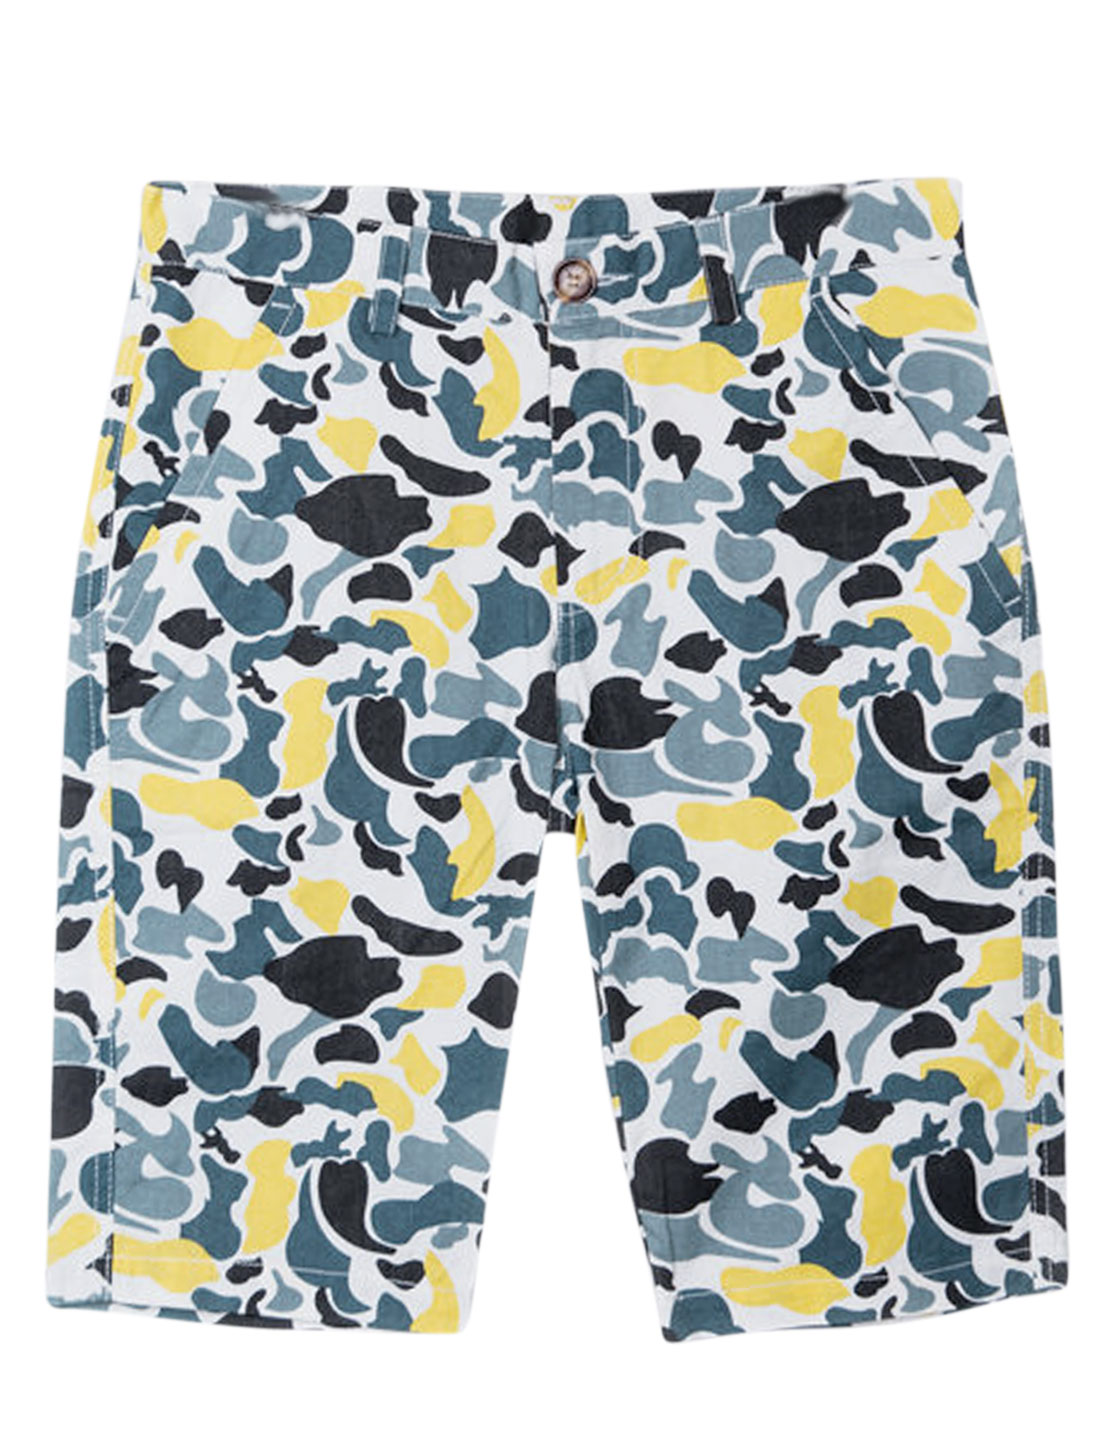 Men Zipper Fly Camouflage Pattern Chic NEW Shorts White Yellow W28